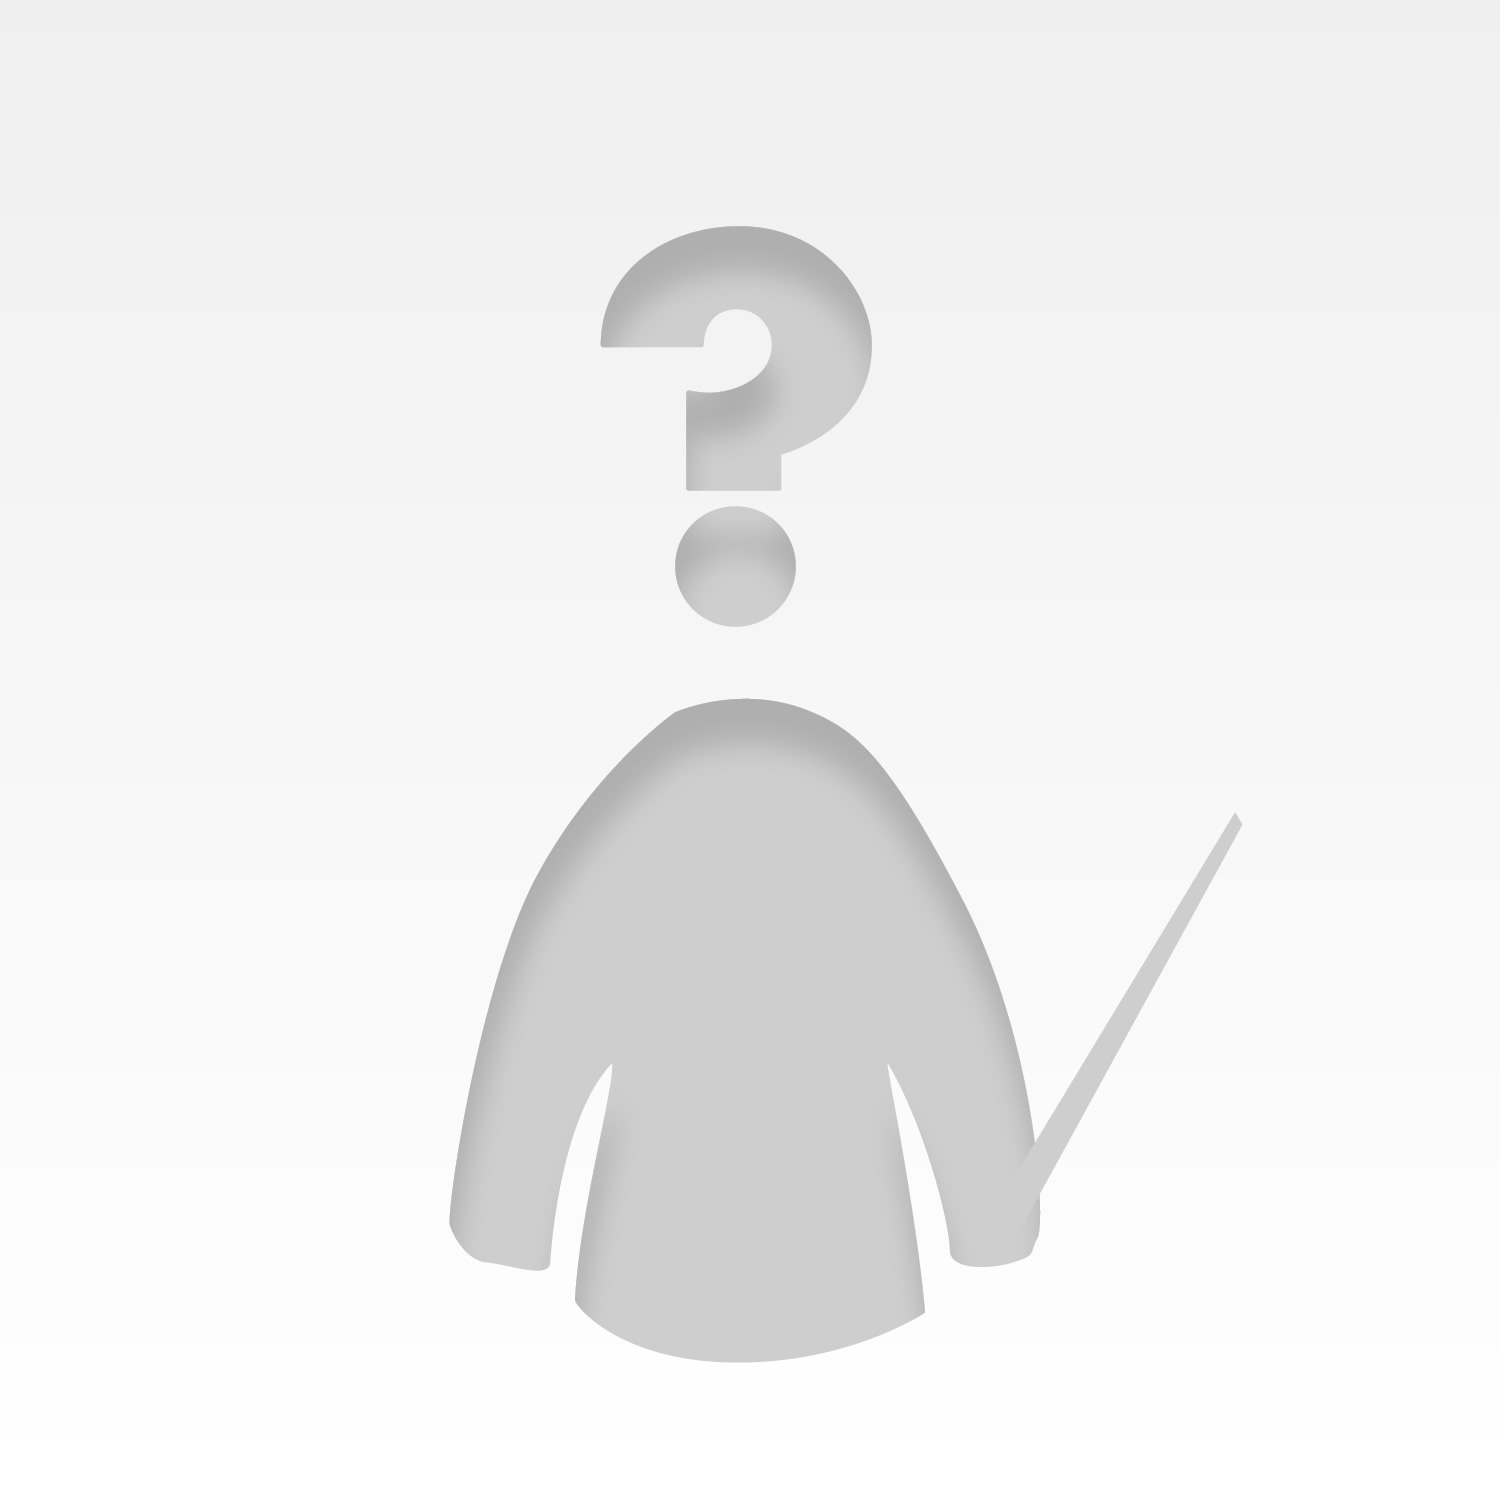 NgLo\'s avatar